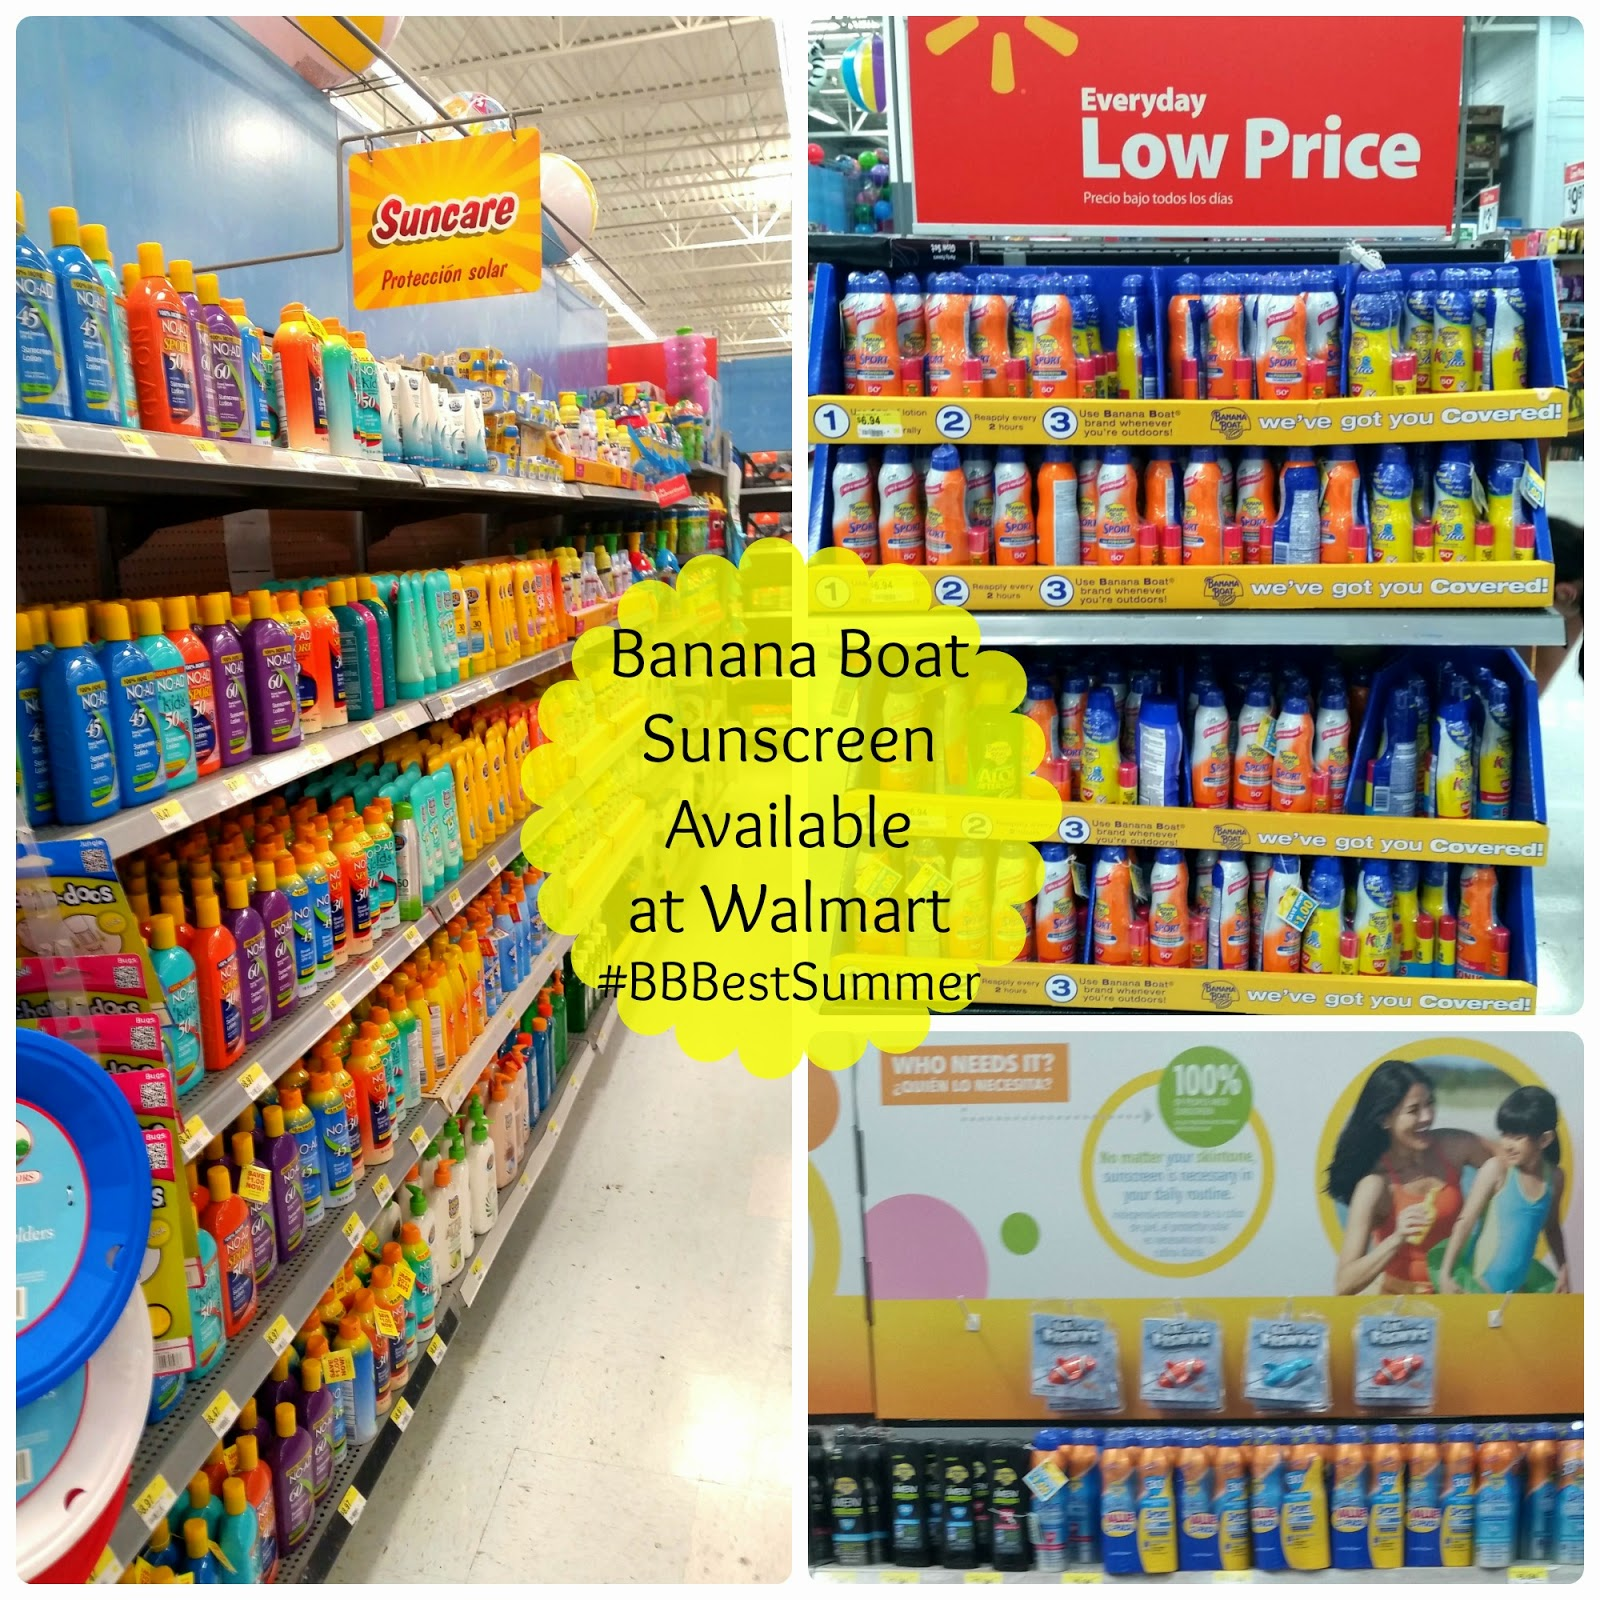 Banana Boat sunscreen available at Walmart #BBBestSummer #shop